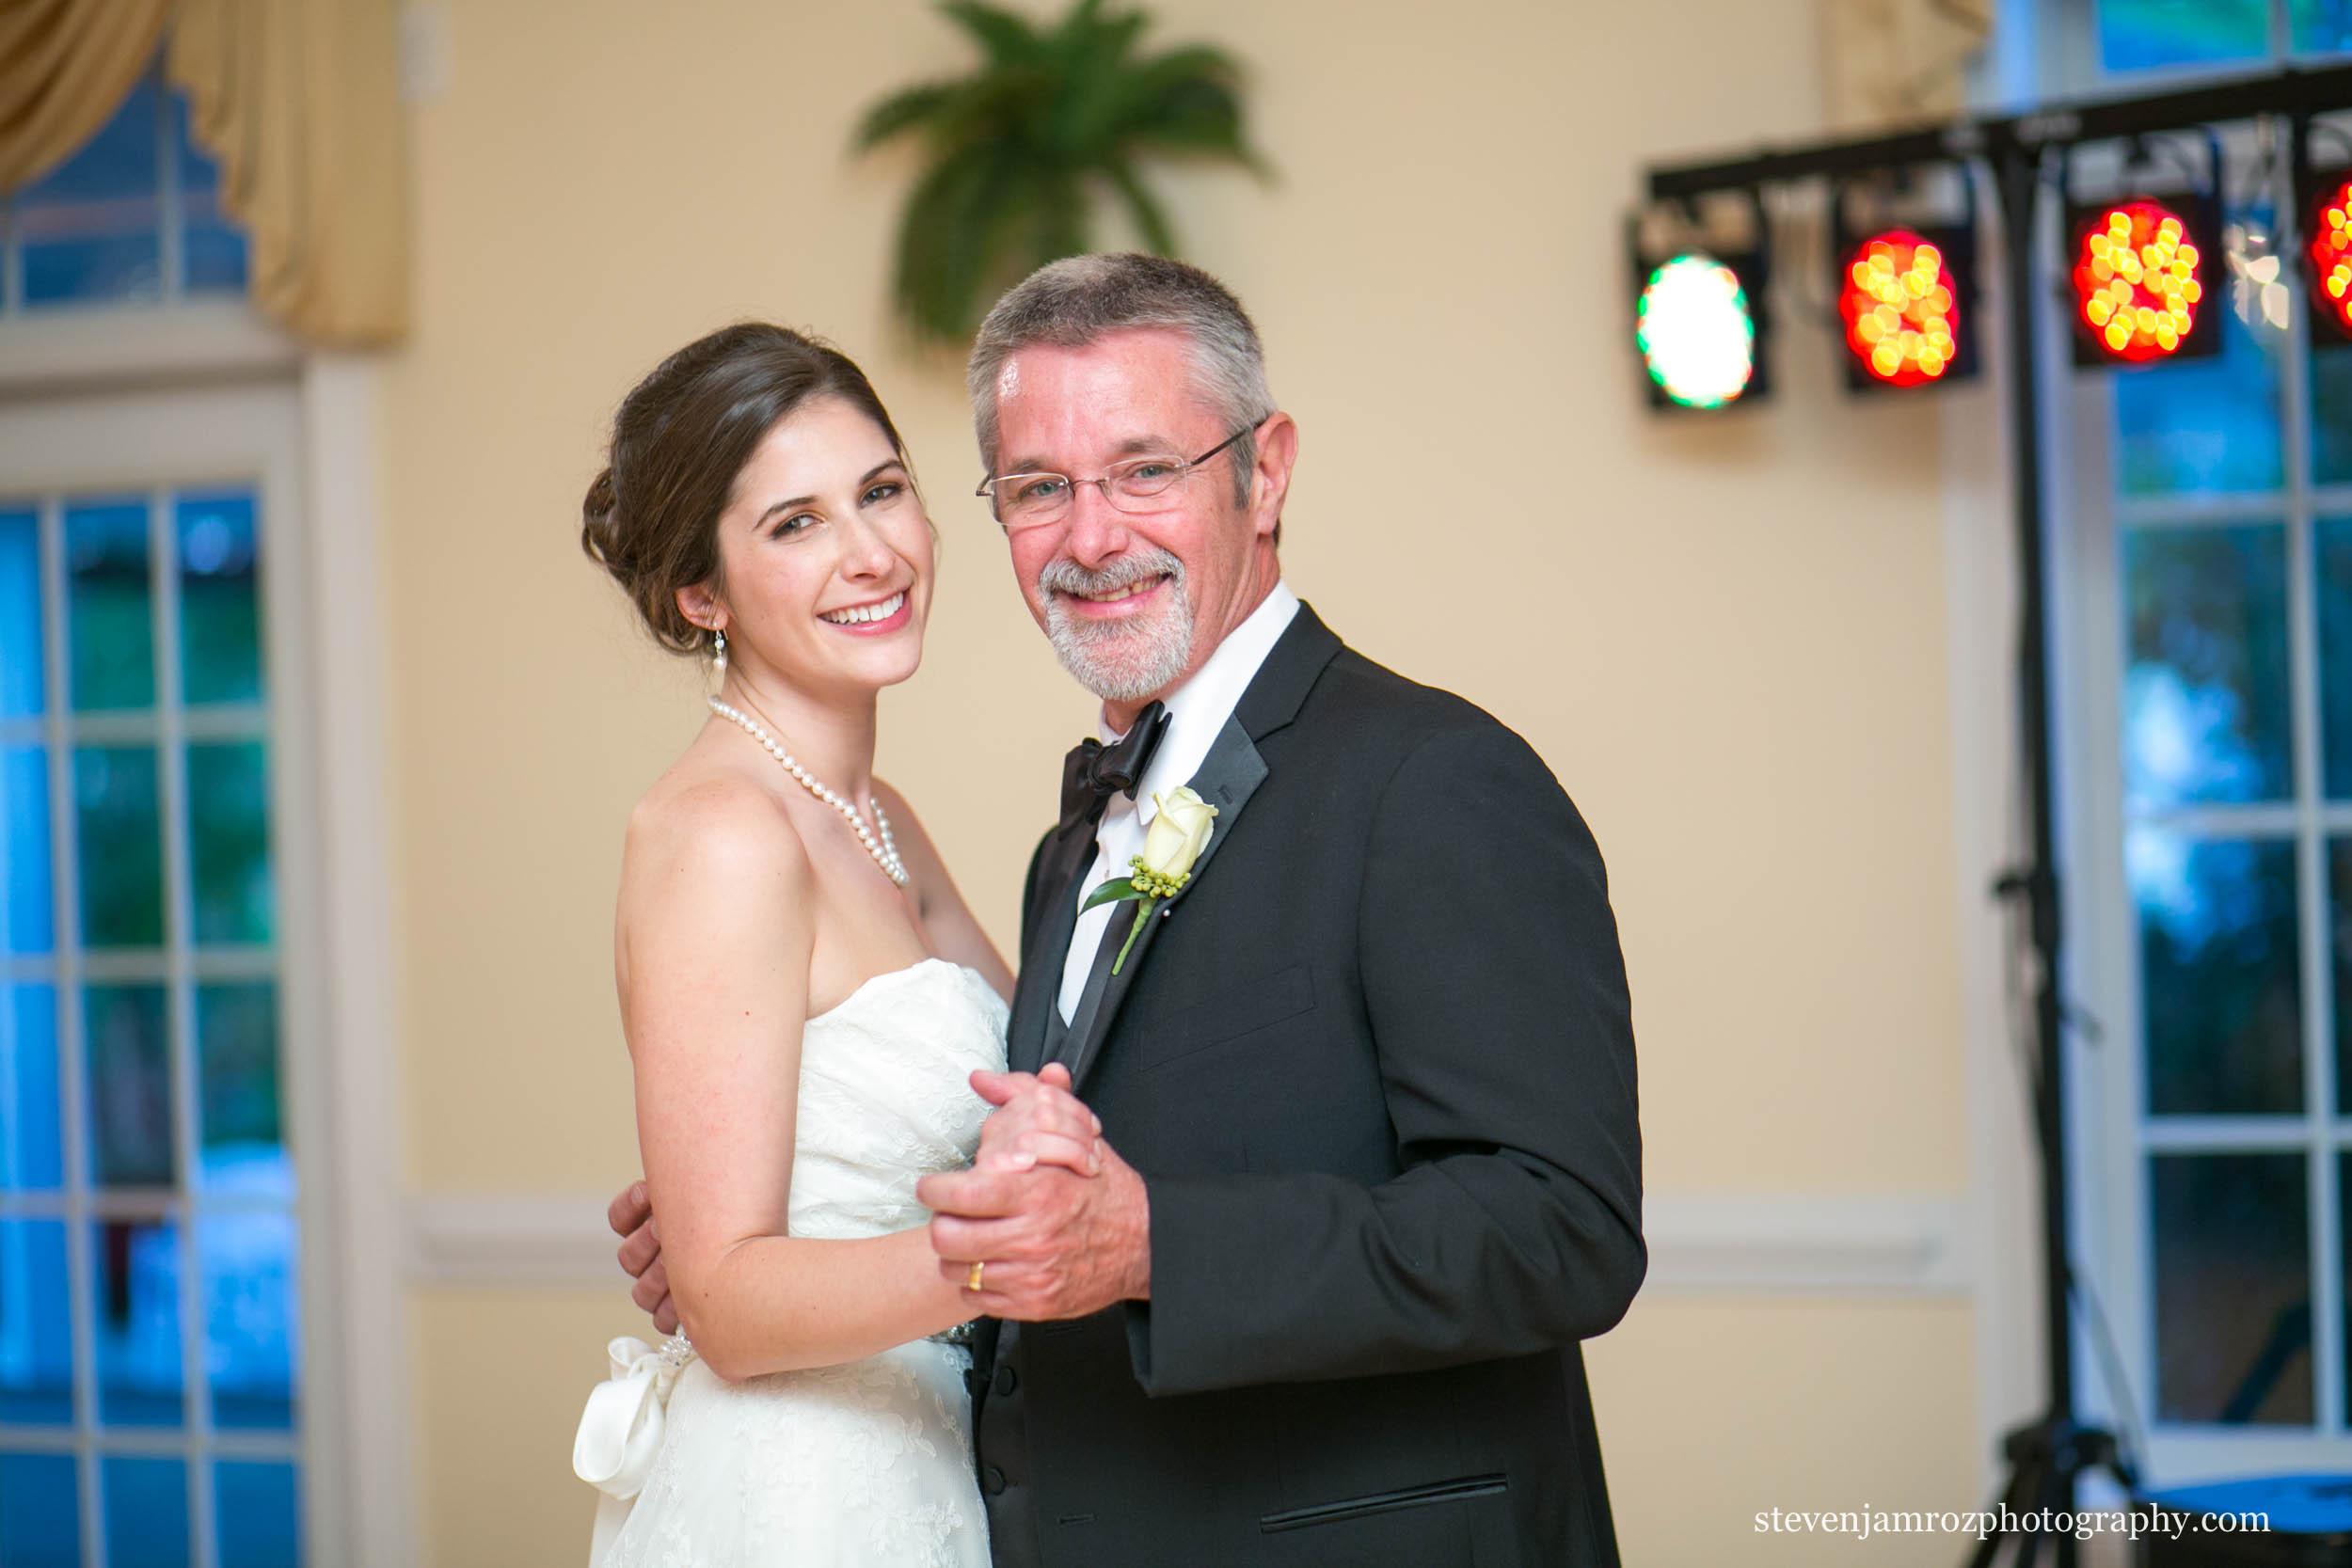 dancing-father-daughter-hudson-manor-steven-jamroz-photography-0384.jpg